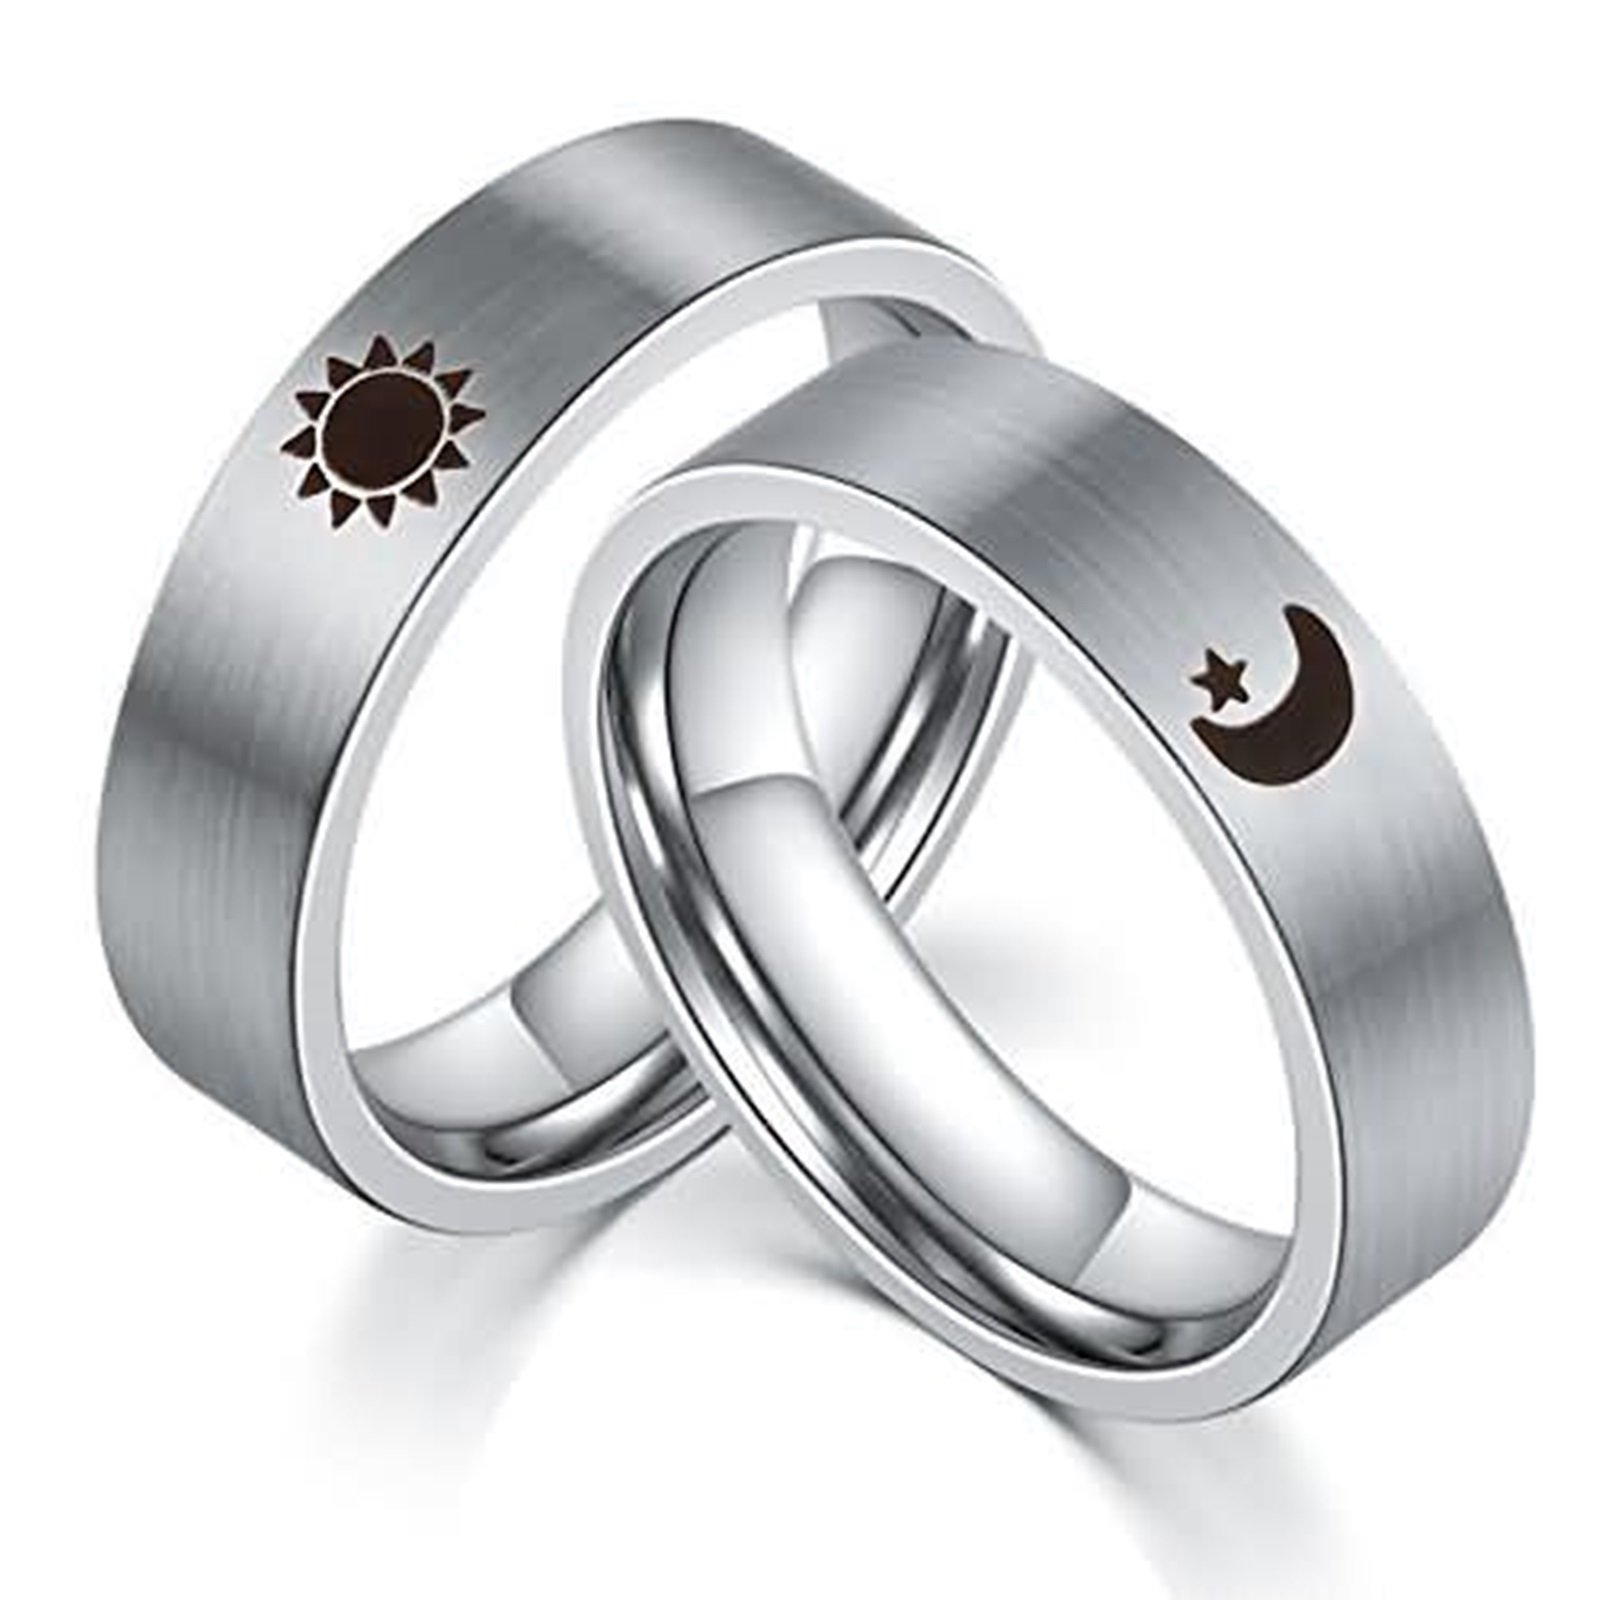 Daesar 1PCS Couple Ring Engraving Stainless Steel Ring Engraving Moon Star Rings Commitment Couple Silver Ring Size 9